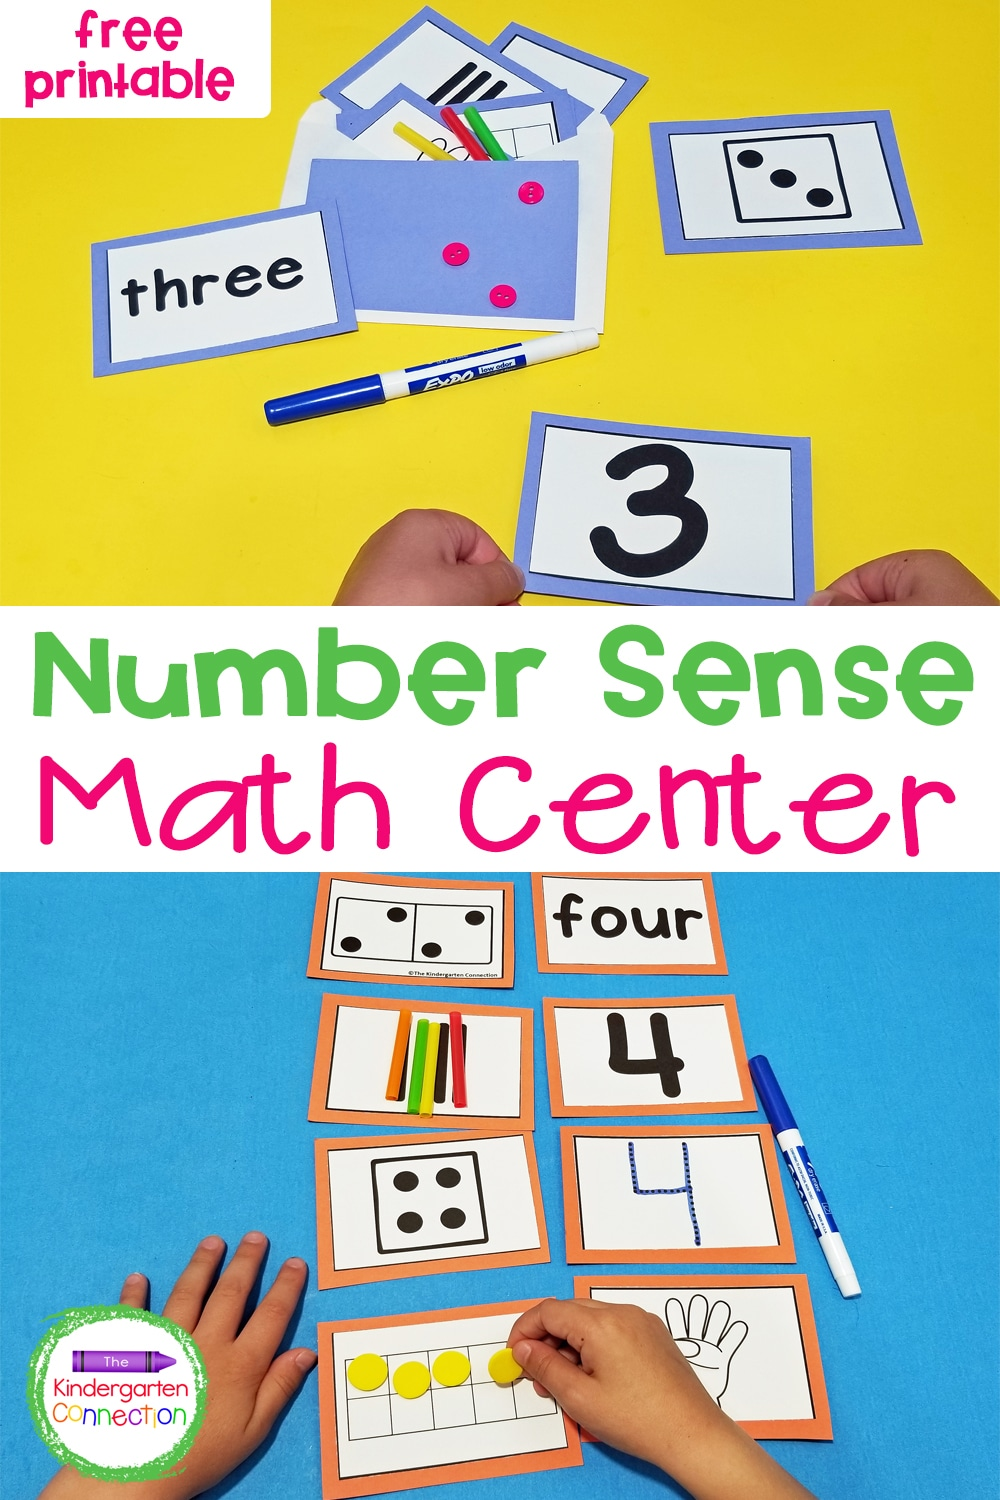 Work on skills like number identification, counting, subitizing, addition, and more with this free Surprise Envelopes Number Sense Activity!